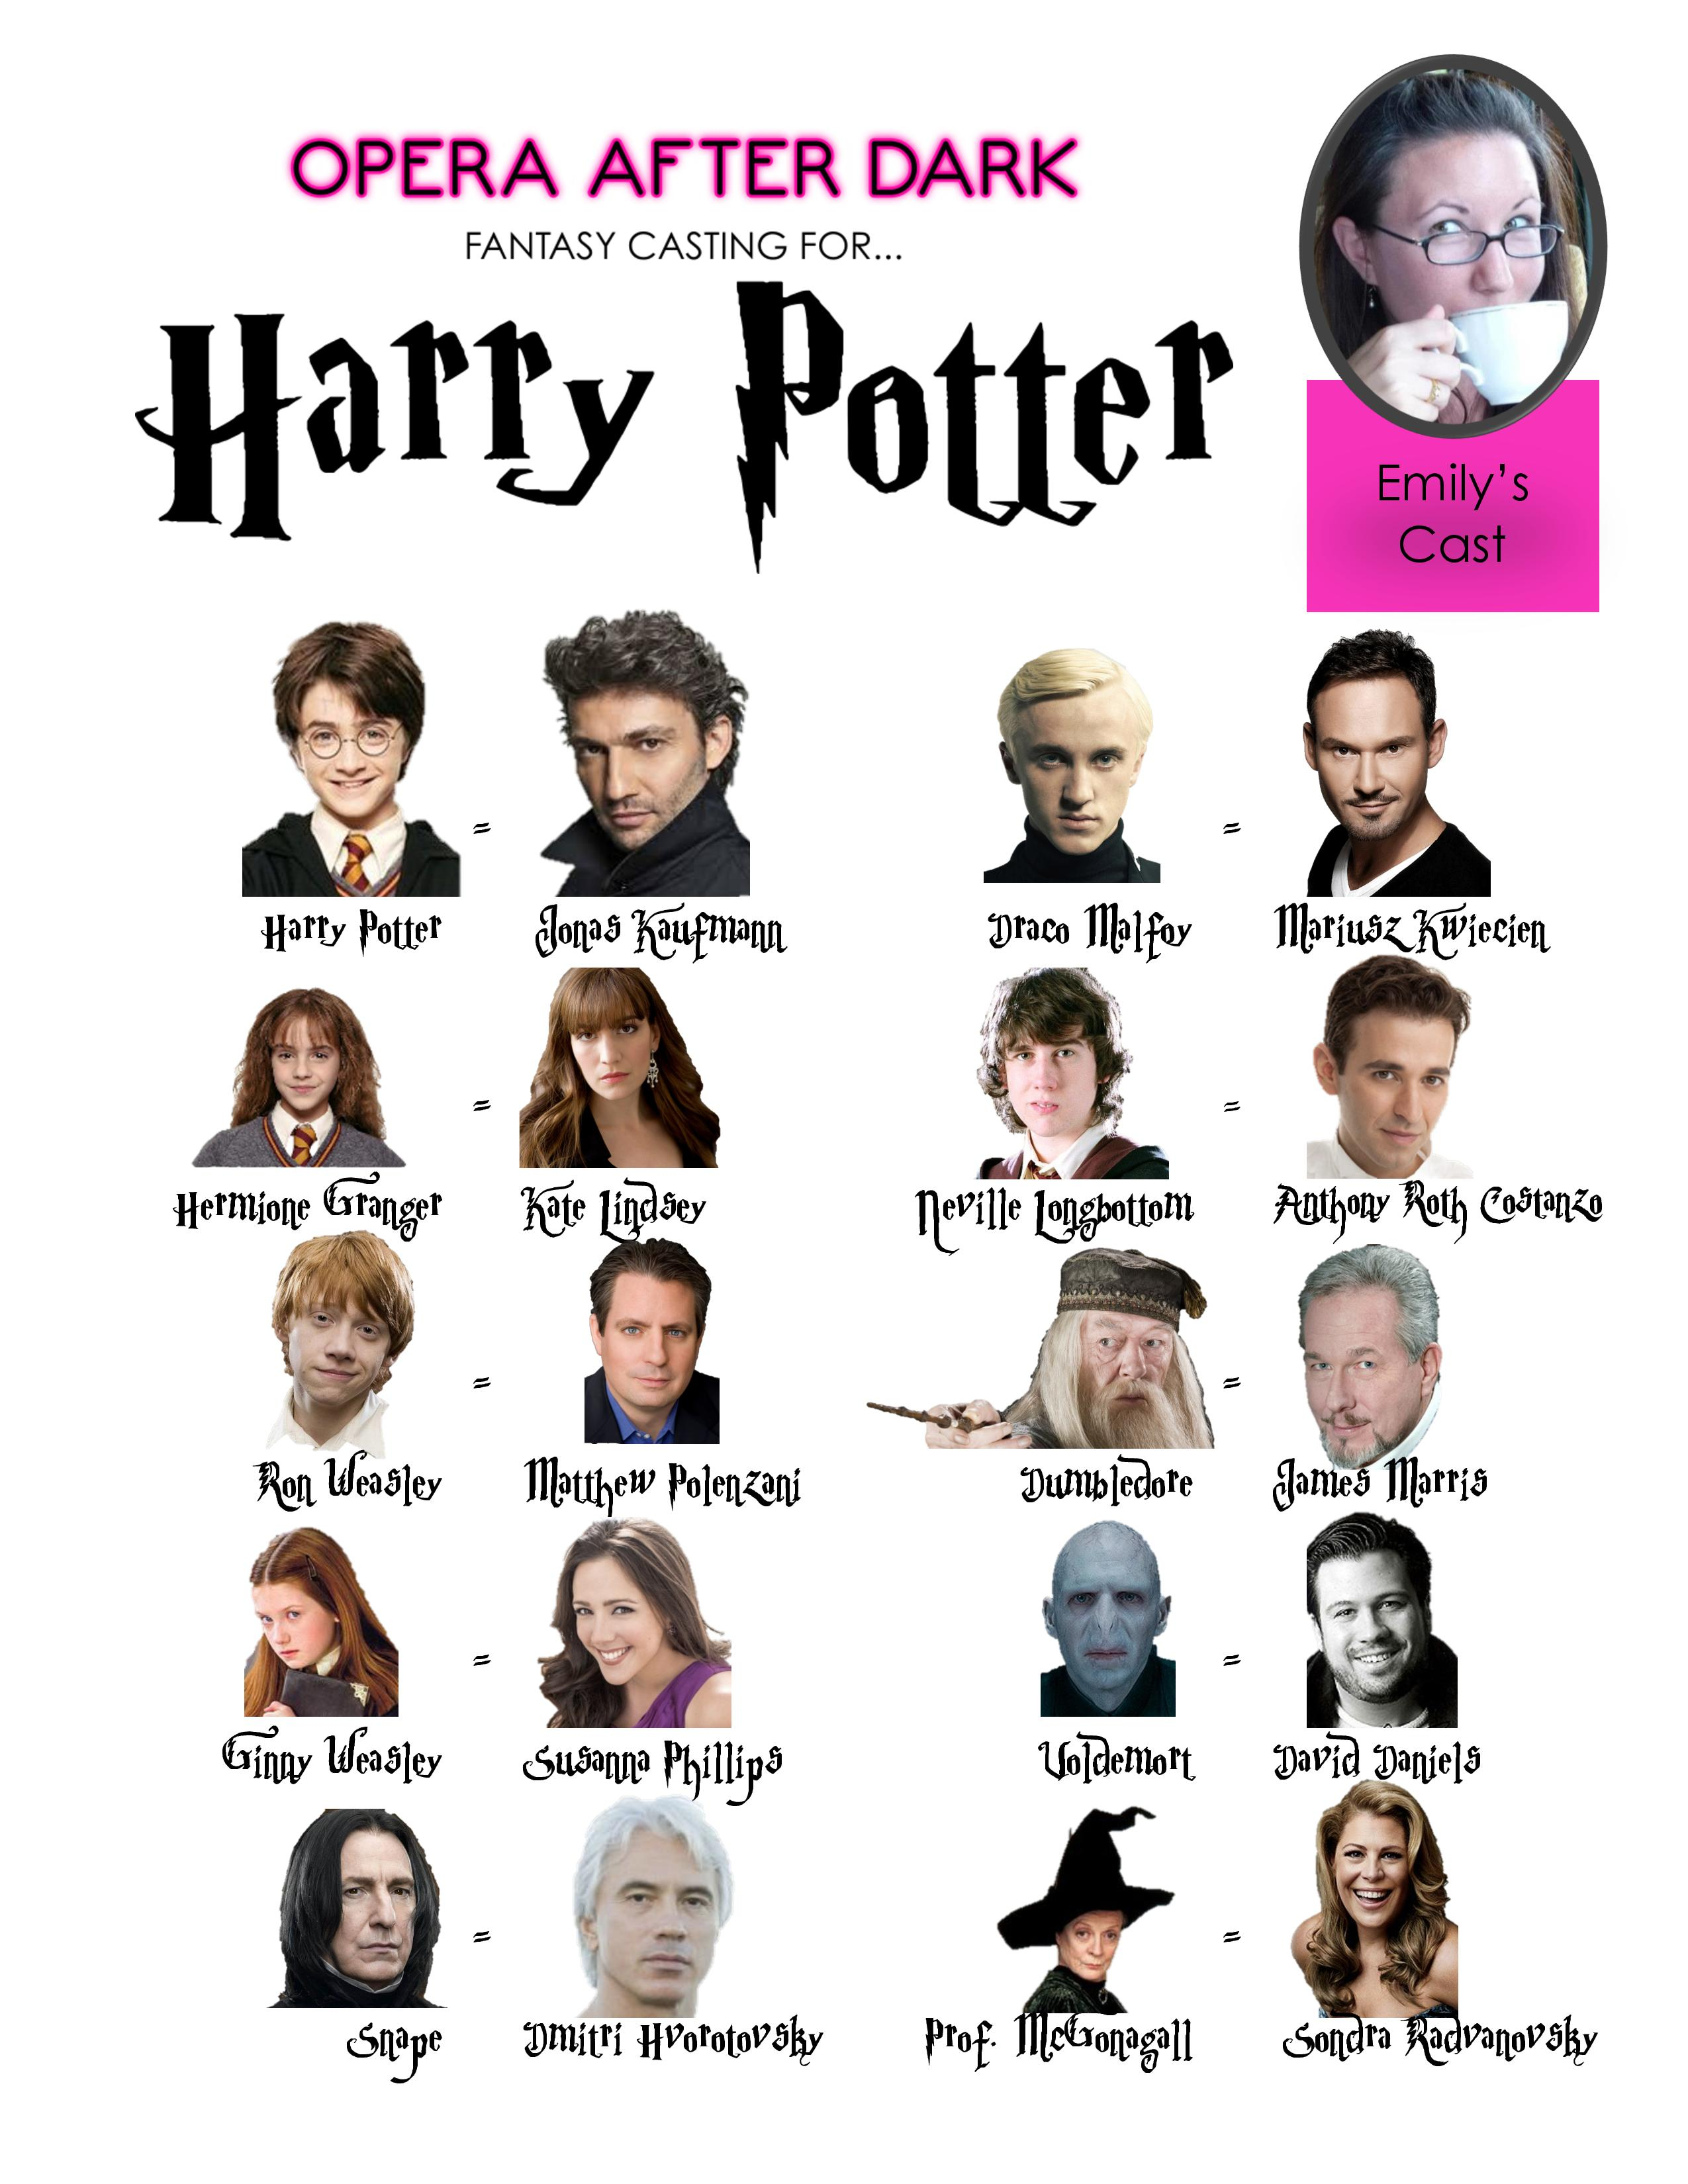 harry-potter-fantasy-casting-chart-emily-page-001